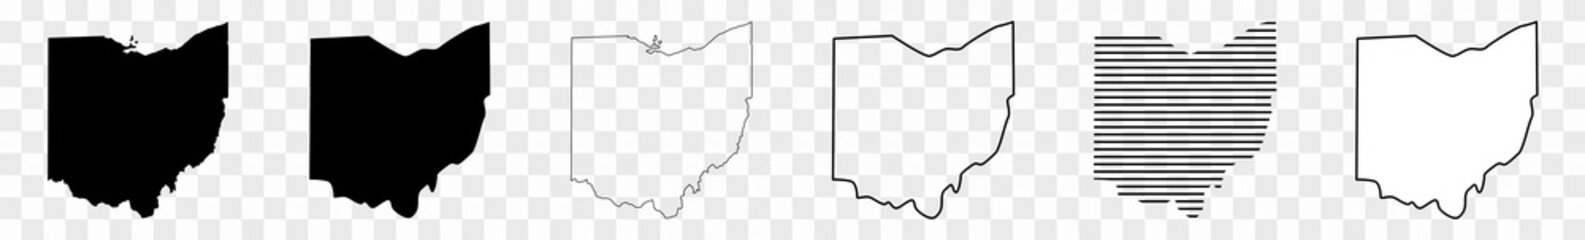 Ohio Map Black | State Border | United States | US America | Transparent Isolated | Variations Fotomurales